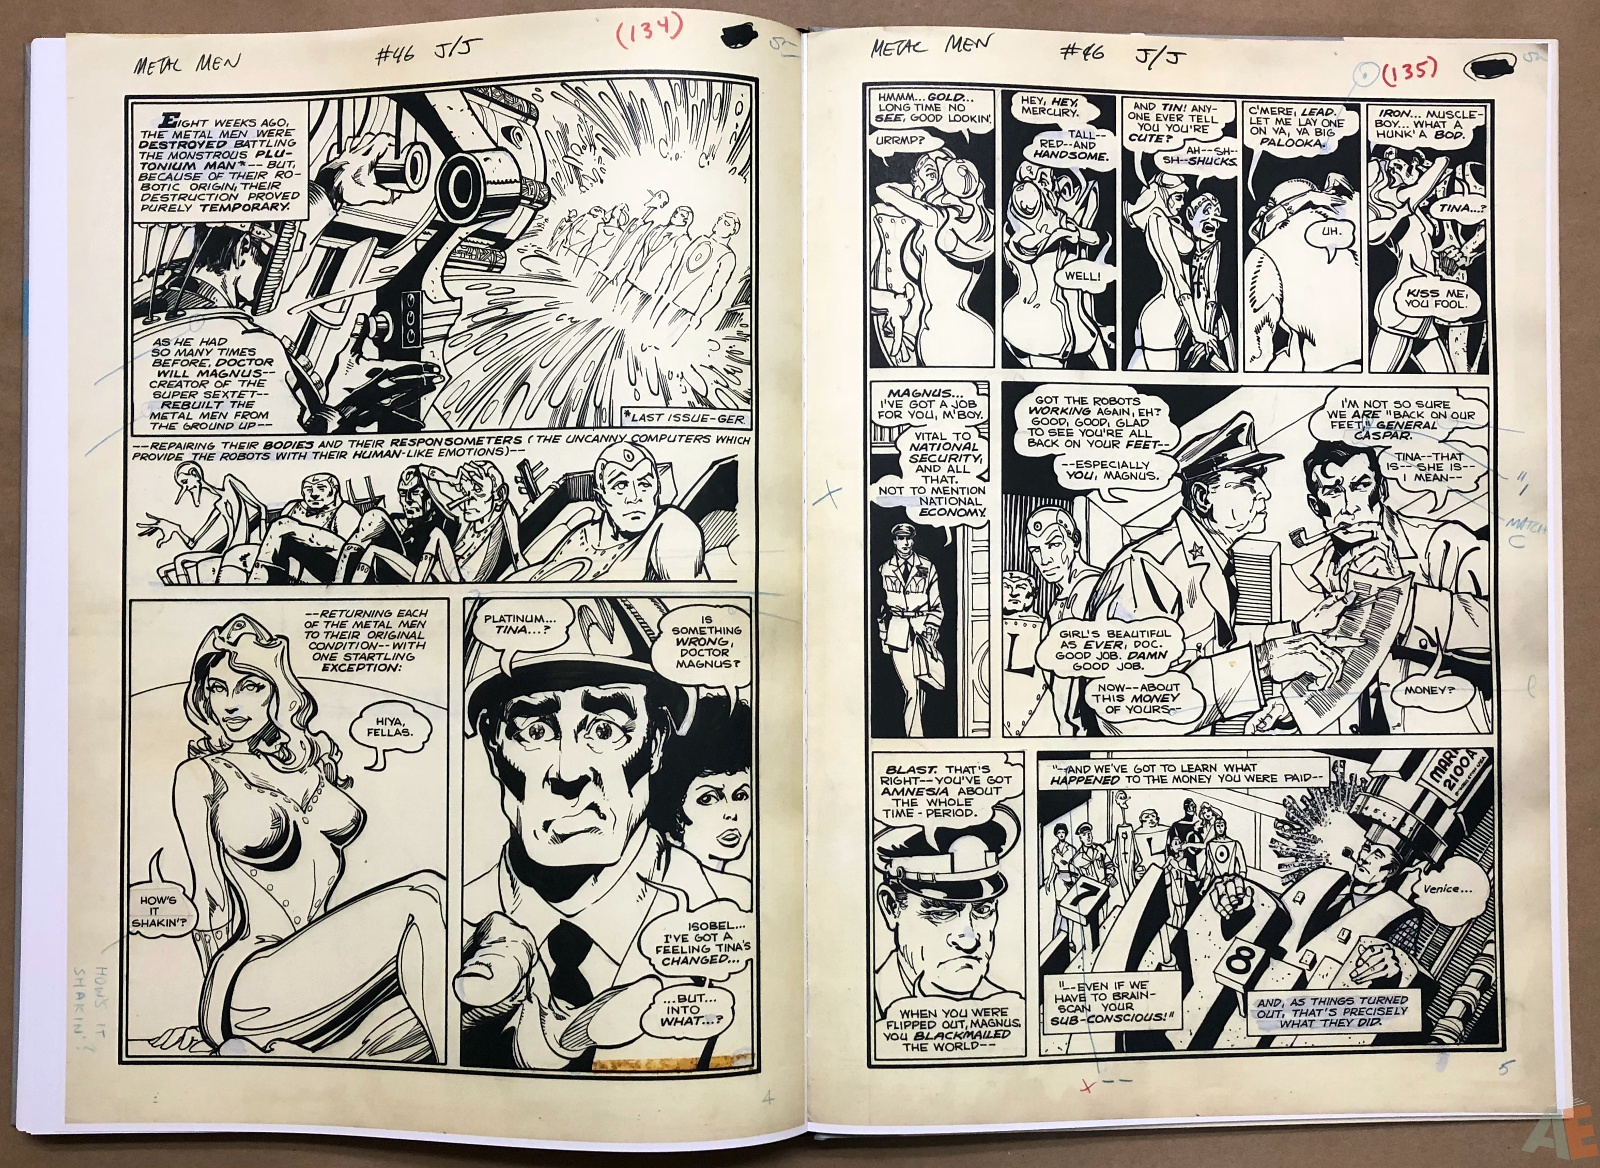 Walter Simonson Manhunter and Other Stories Artist's Edition 40